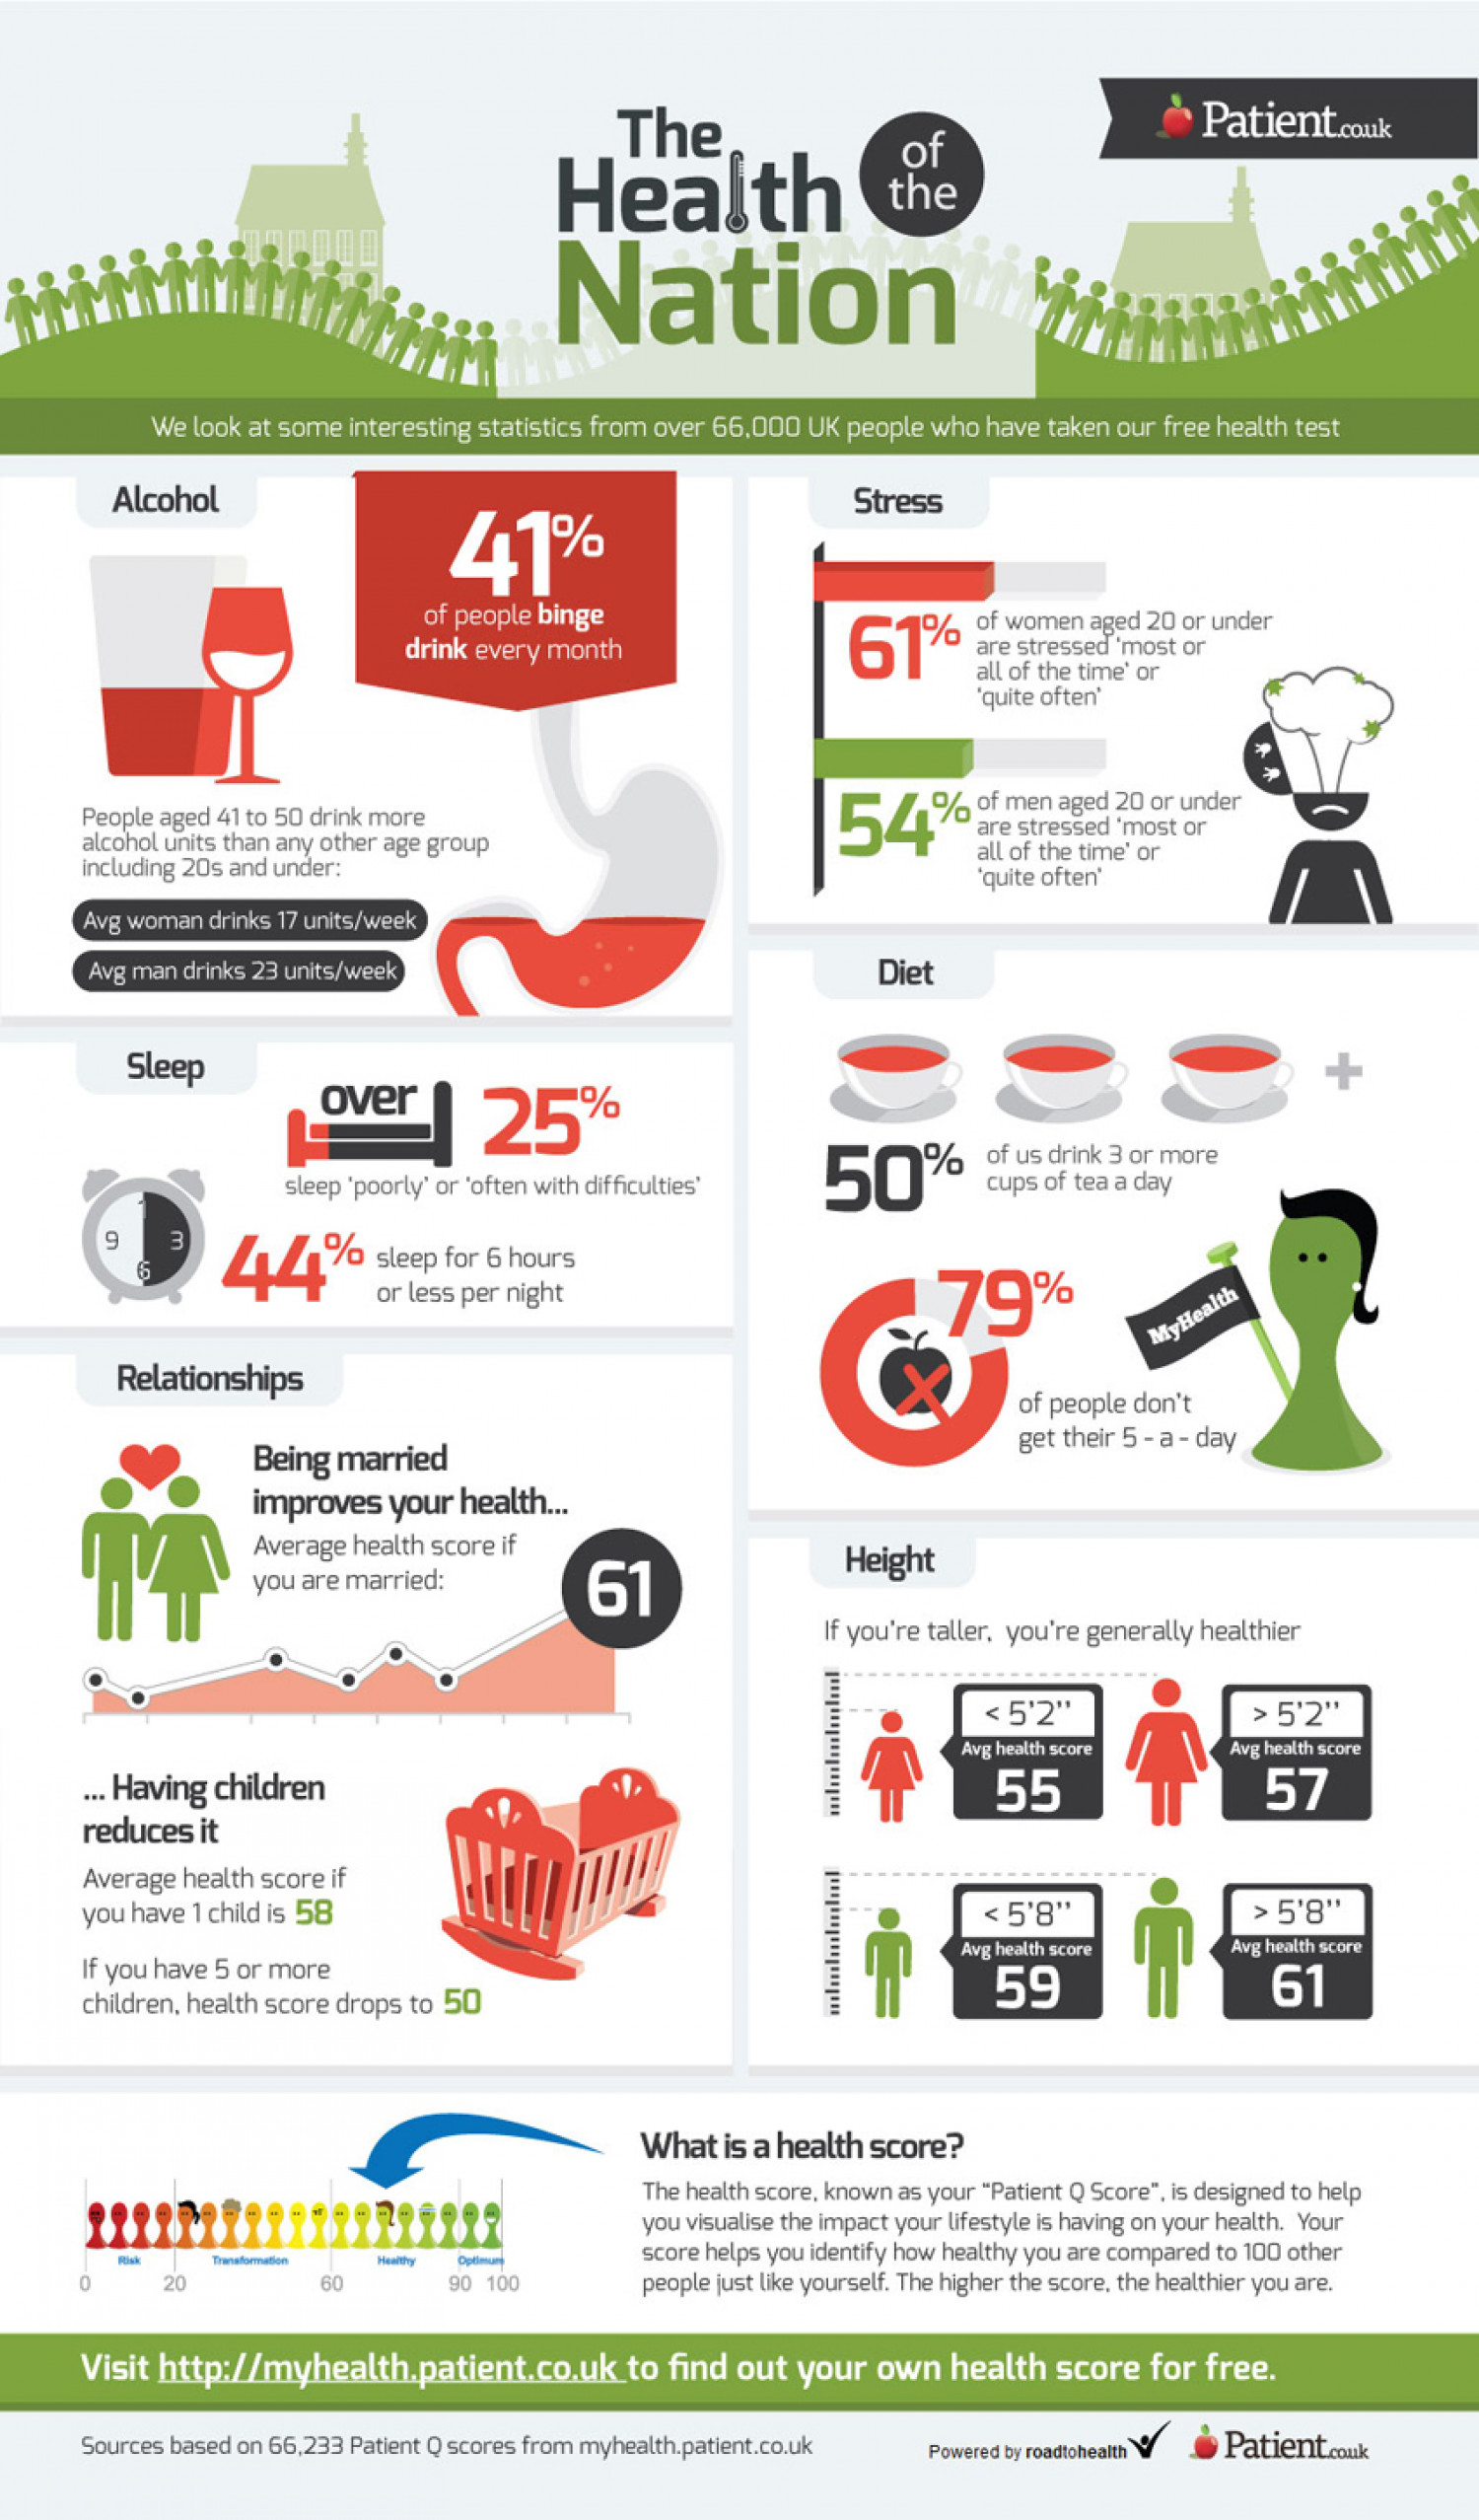 The Health of the Nation Infographic